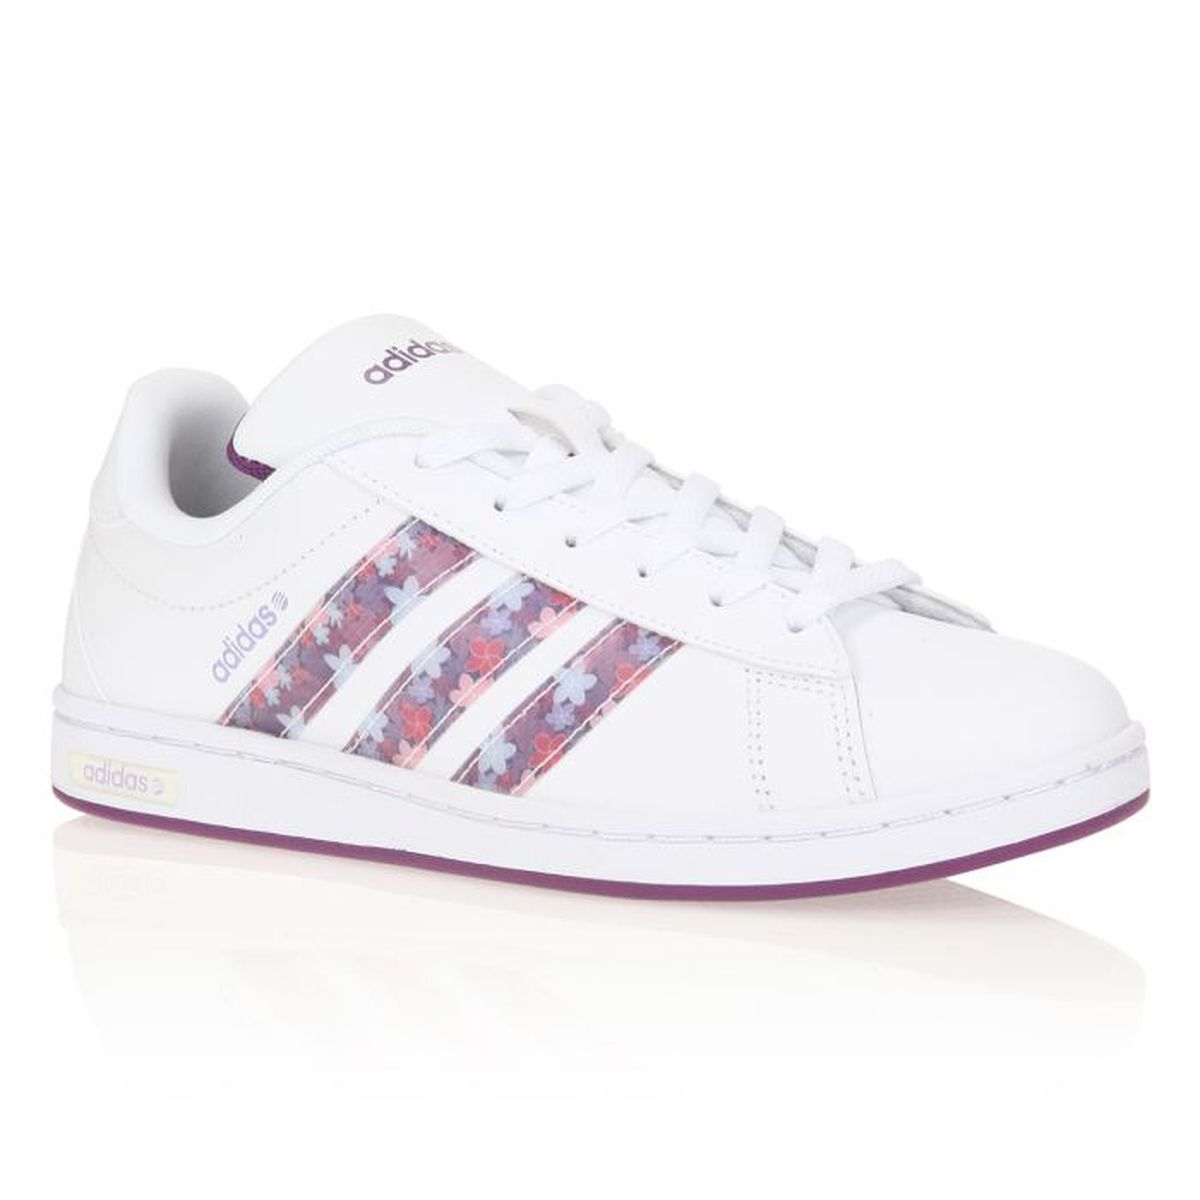 Adidas Neo Moins Cher